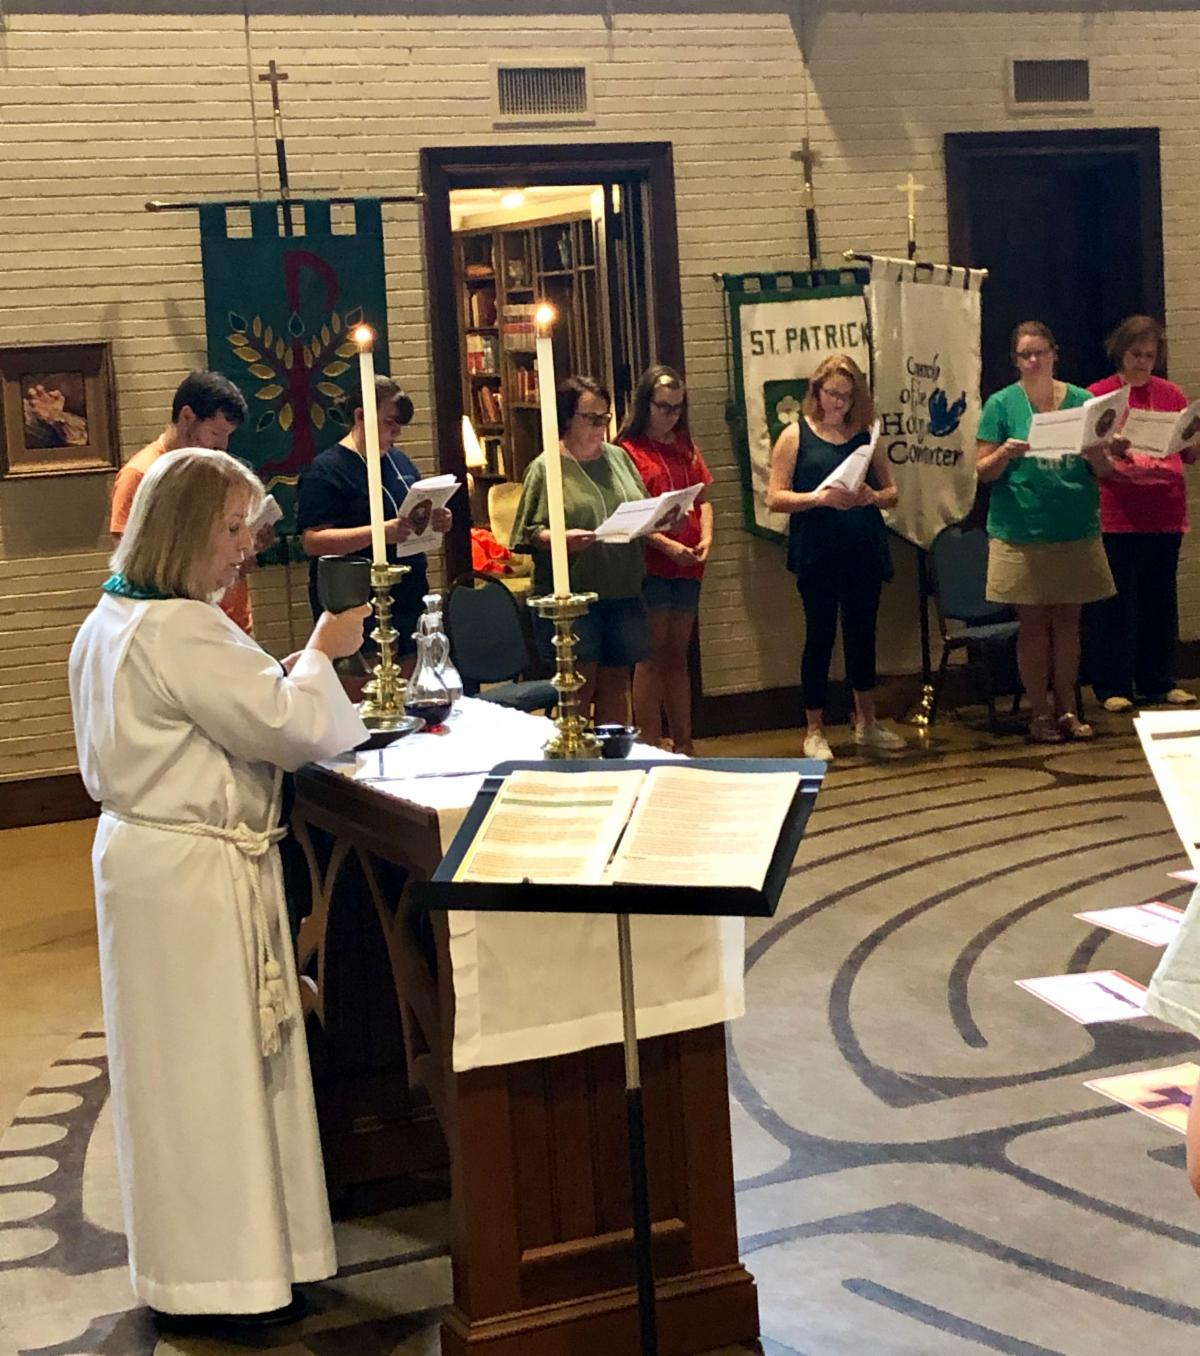 Instructed Eucharist at Acolyte Festival